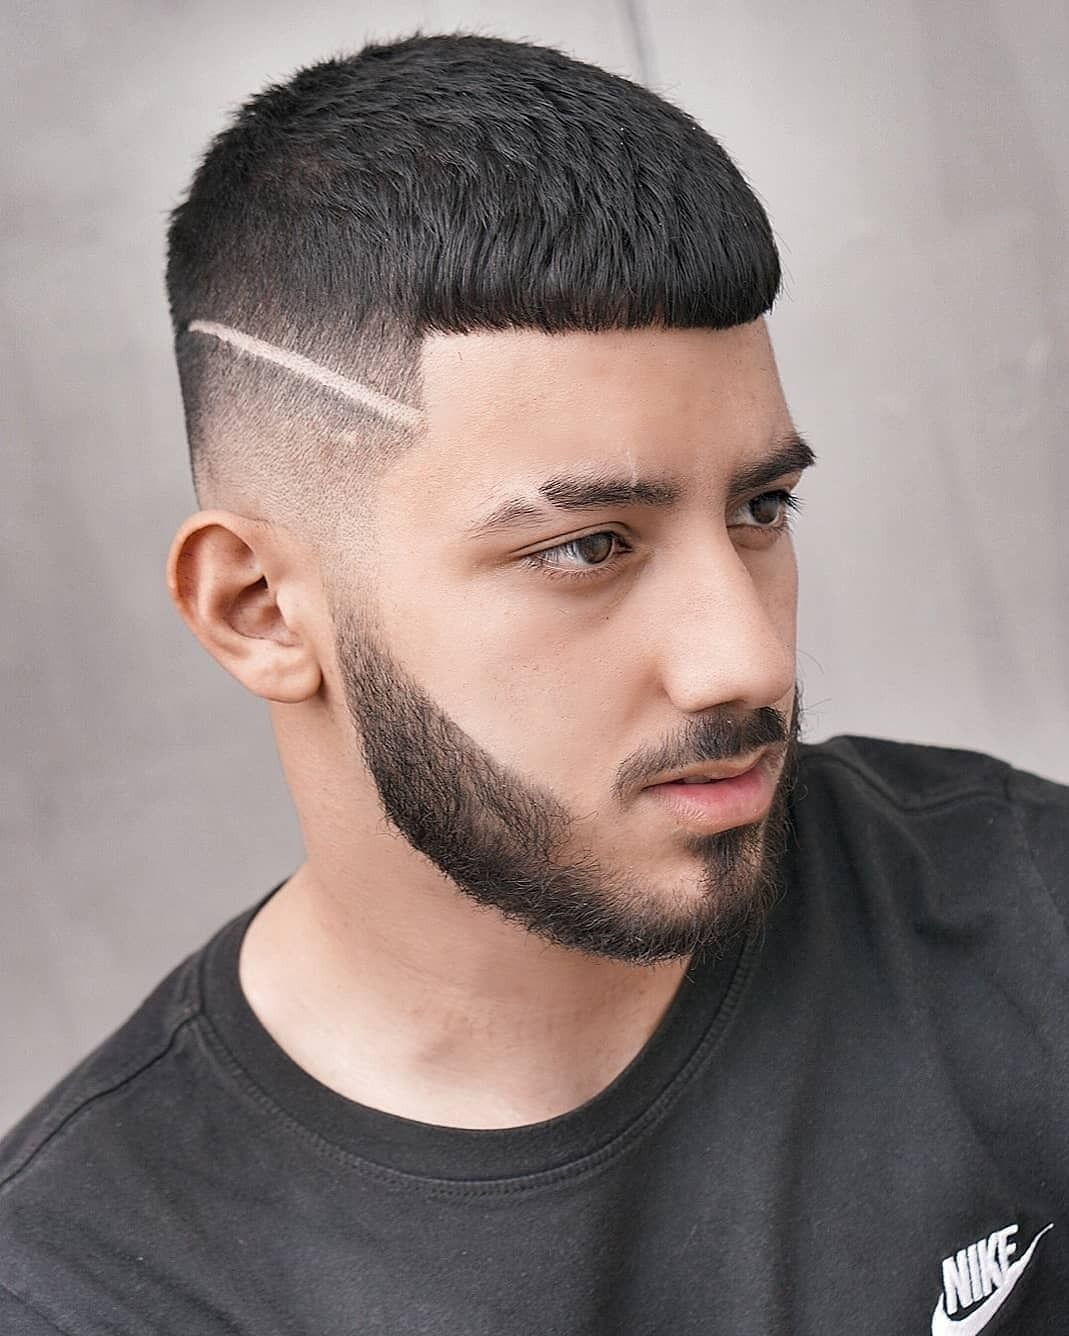 Rate The Hair Style On A Scale Of 1 10 Tag Us In Your Pictures For A Chance To Get Featured Don Mens Hairstyles Short Mens Hairstyles Short Hair Styles